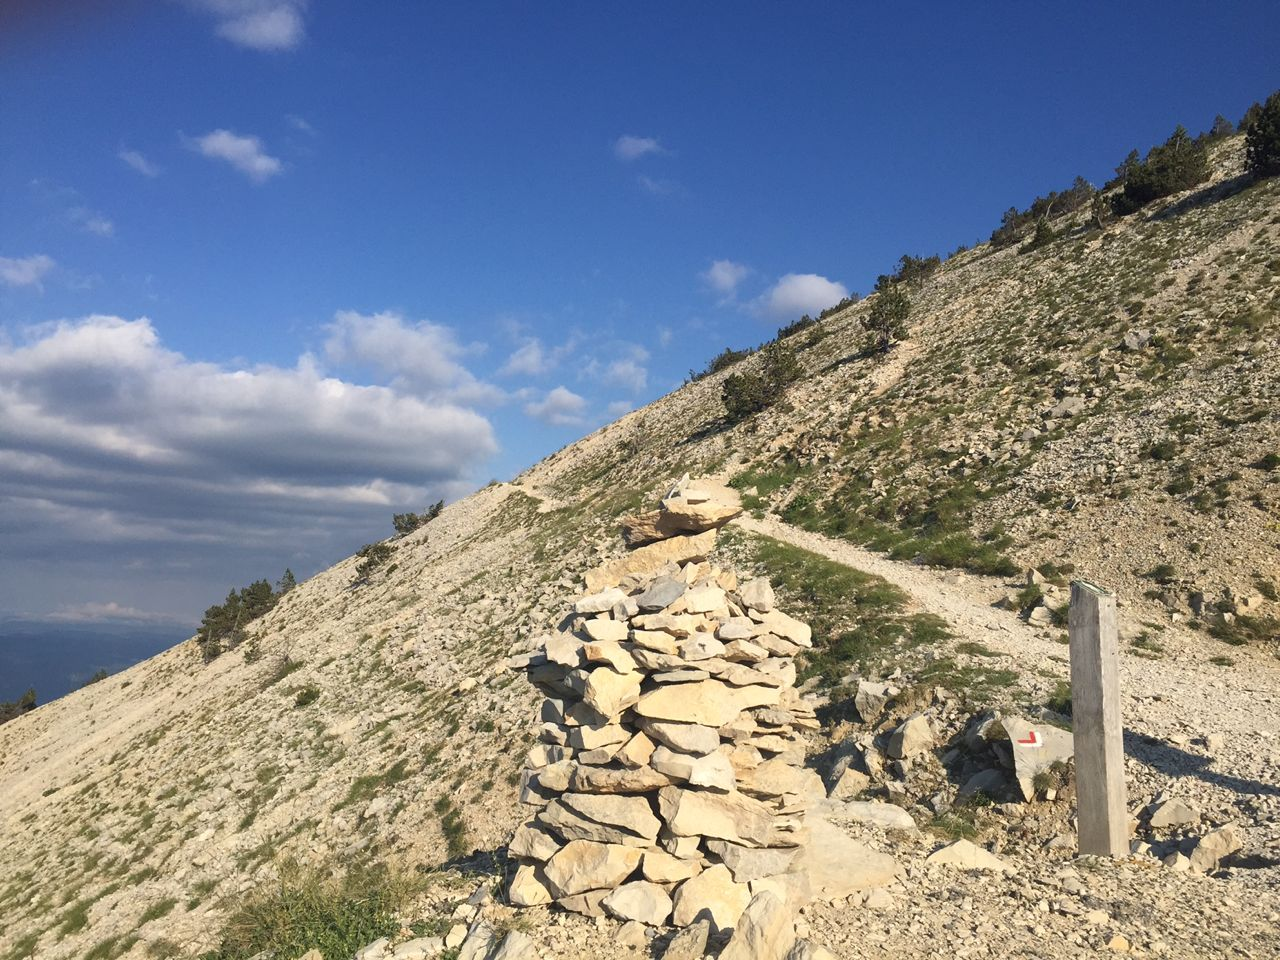 The Mont Ventoux trails